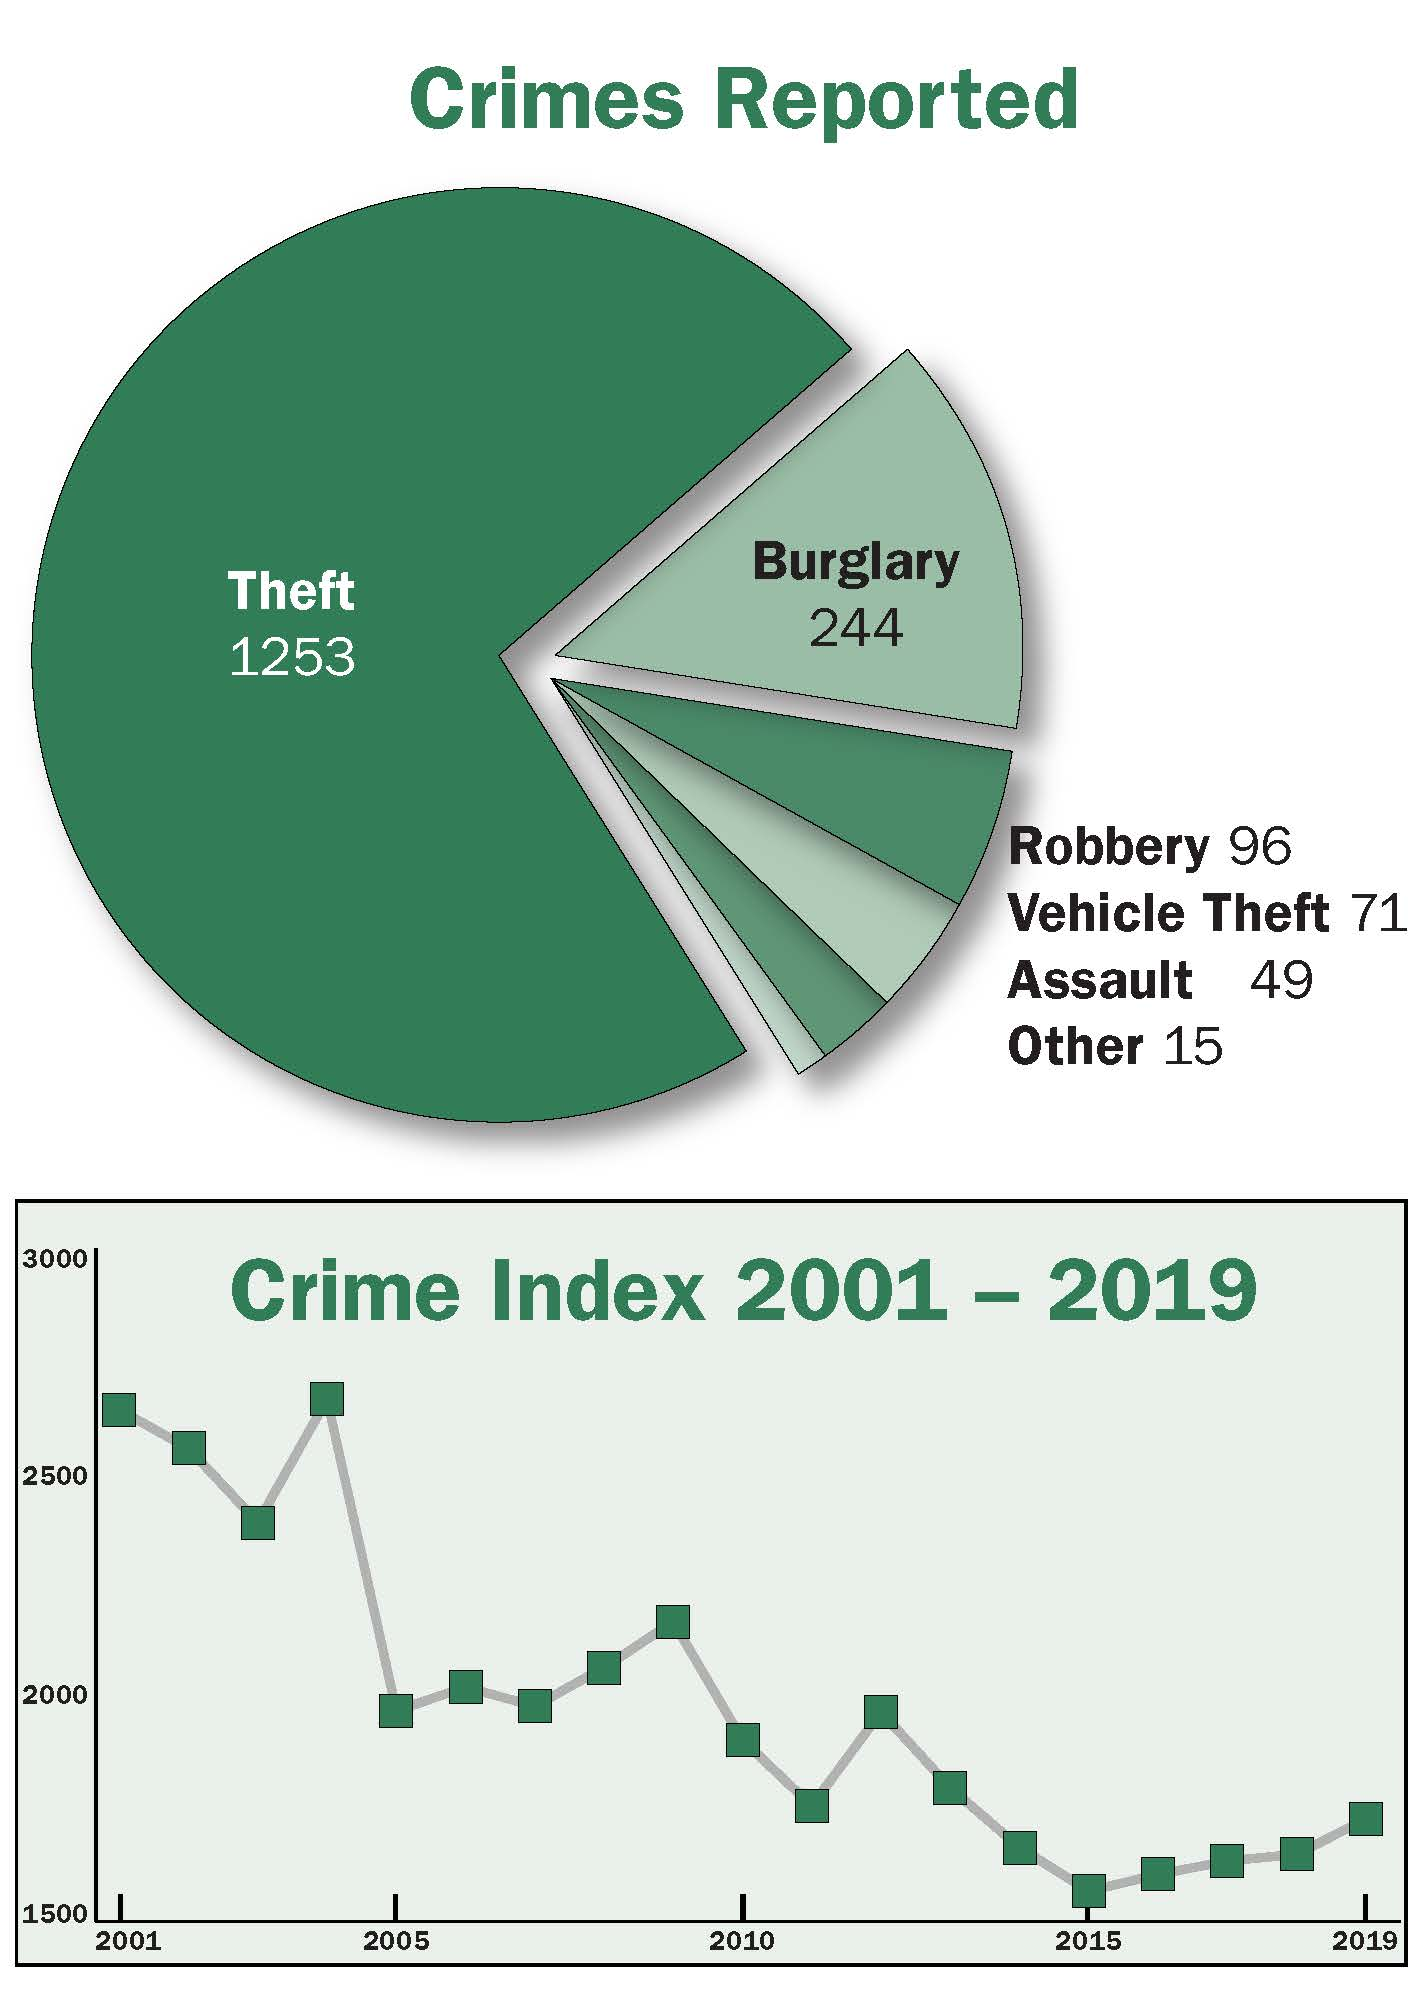 Chart and graph of crimes reported in Oak Park in 2019